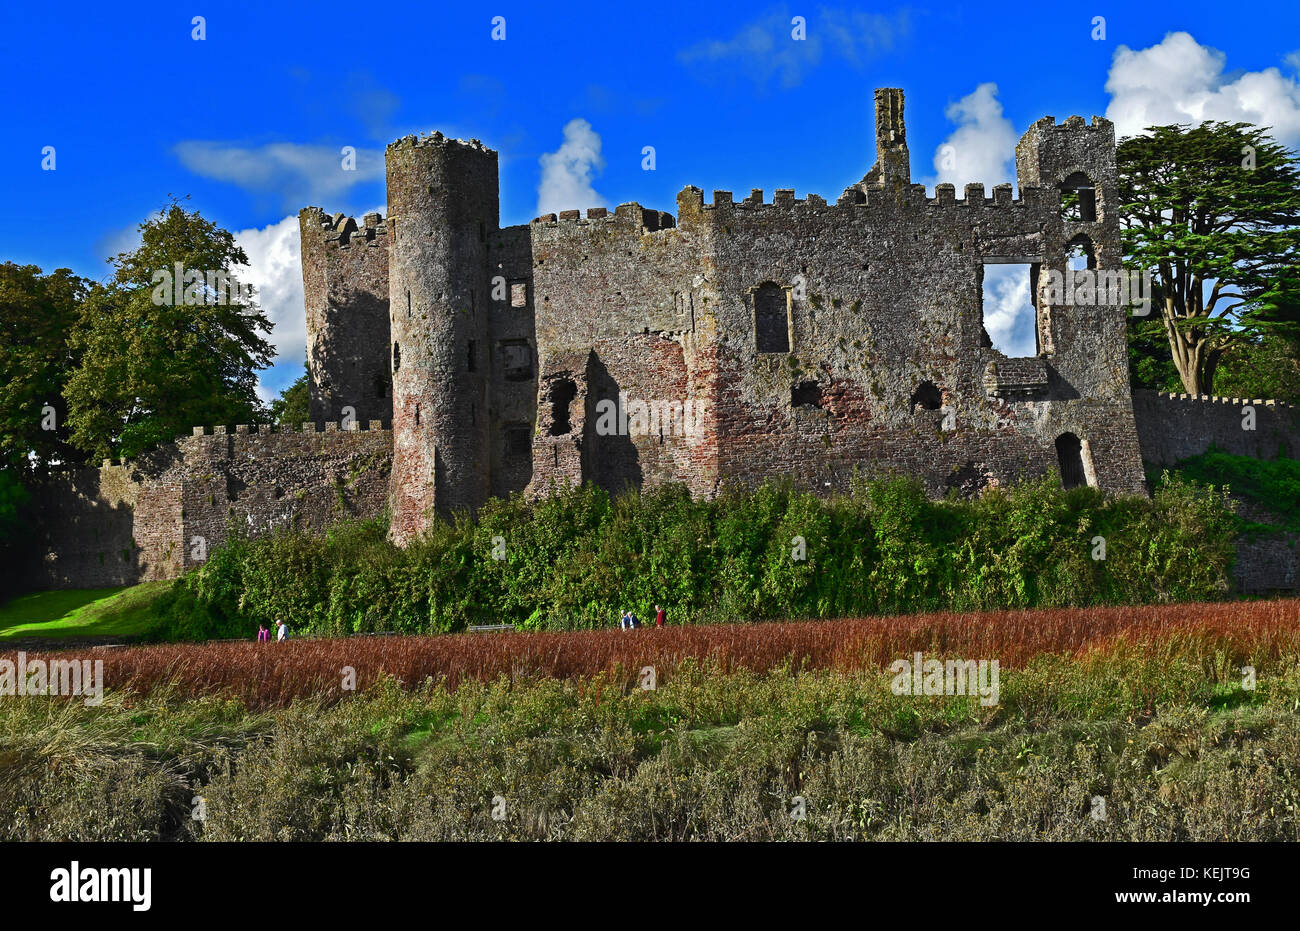 Laugharne Castle, Wales, UK - Stock Image